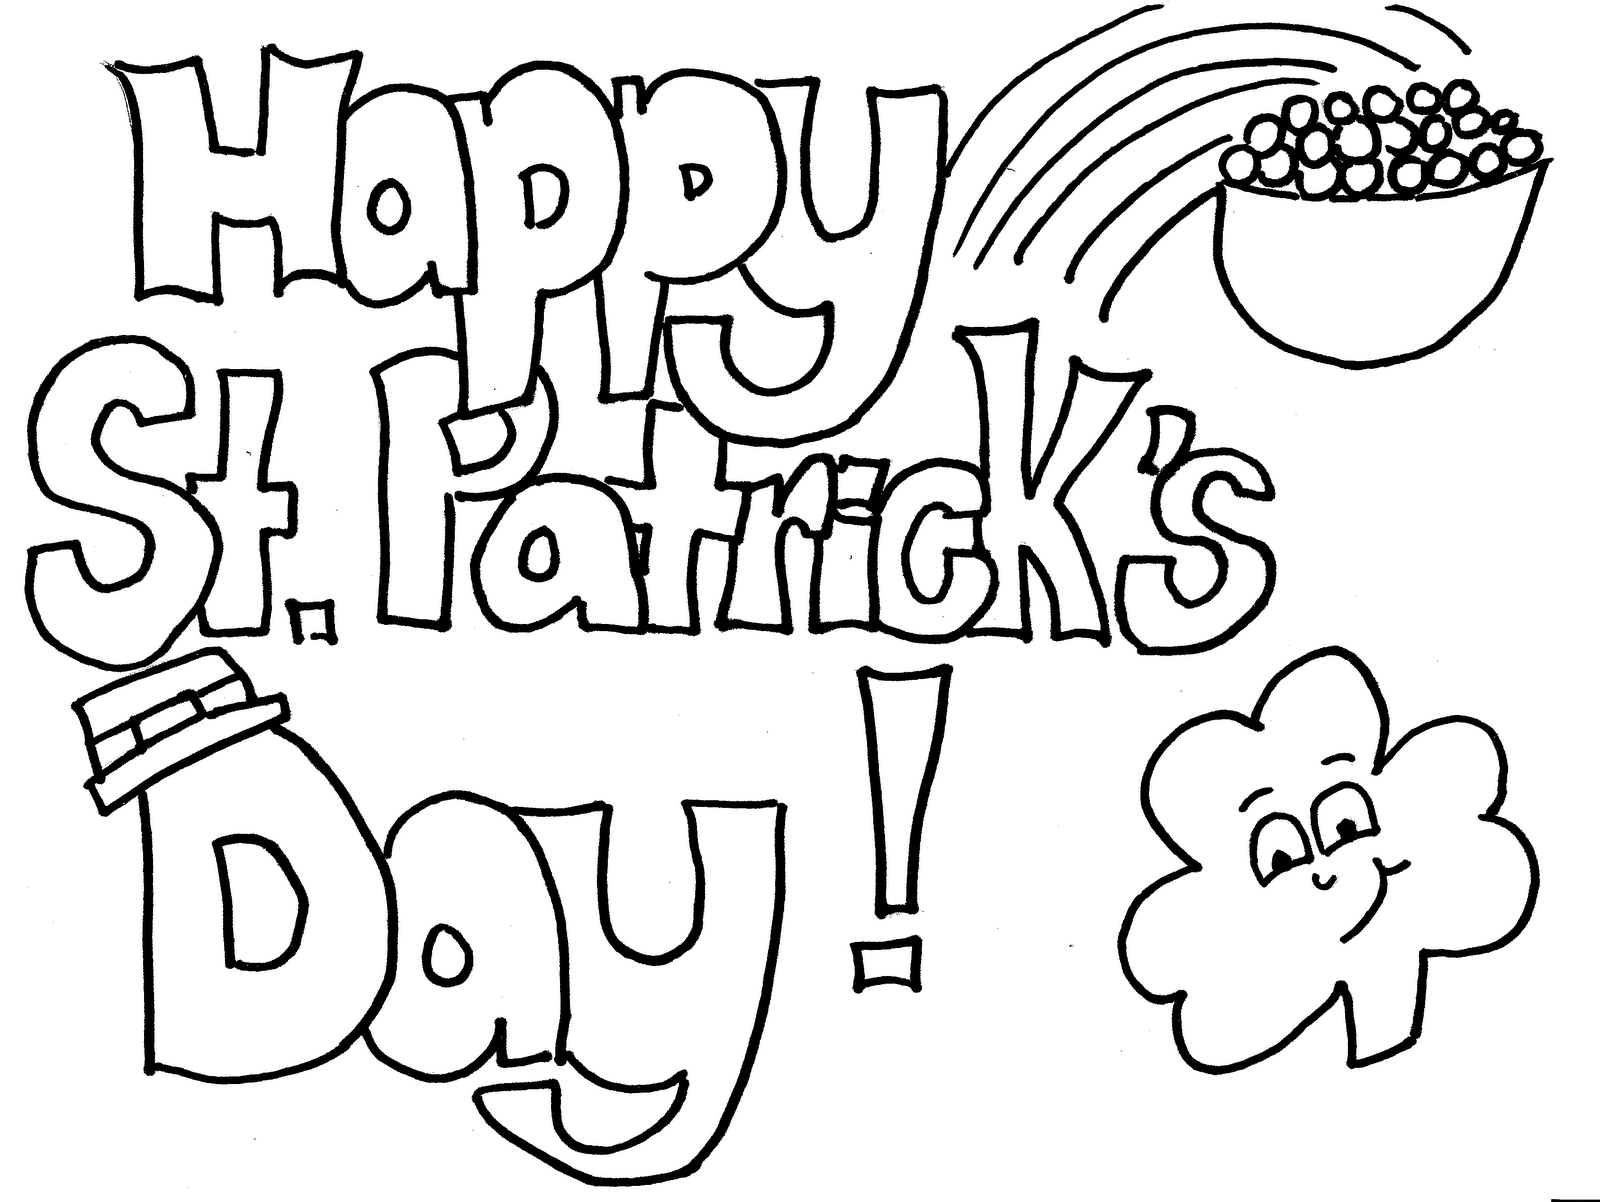 Free Coloring Pictures | Coloring Pages Online for Kids 2014 ...